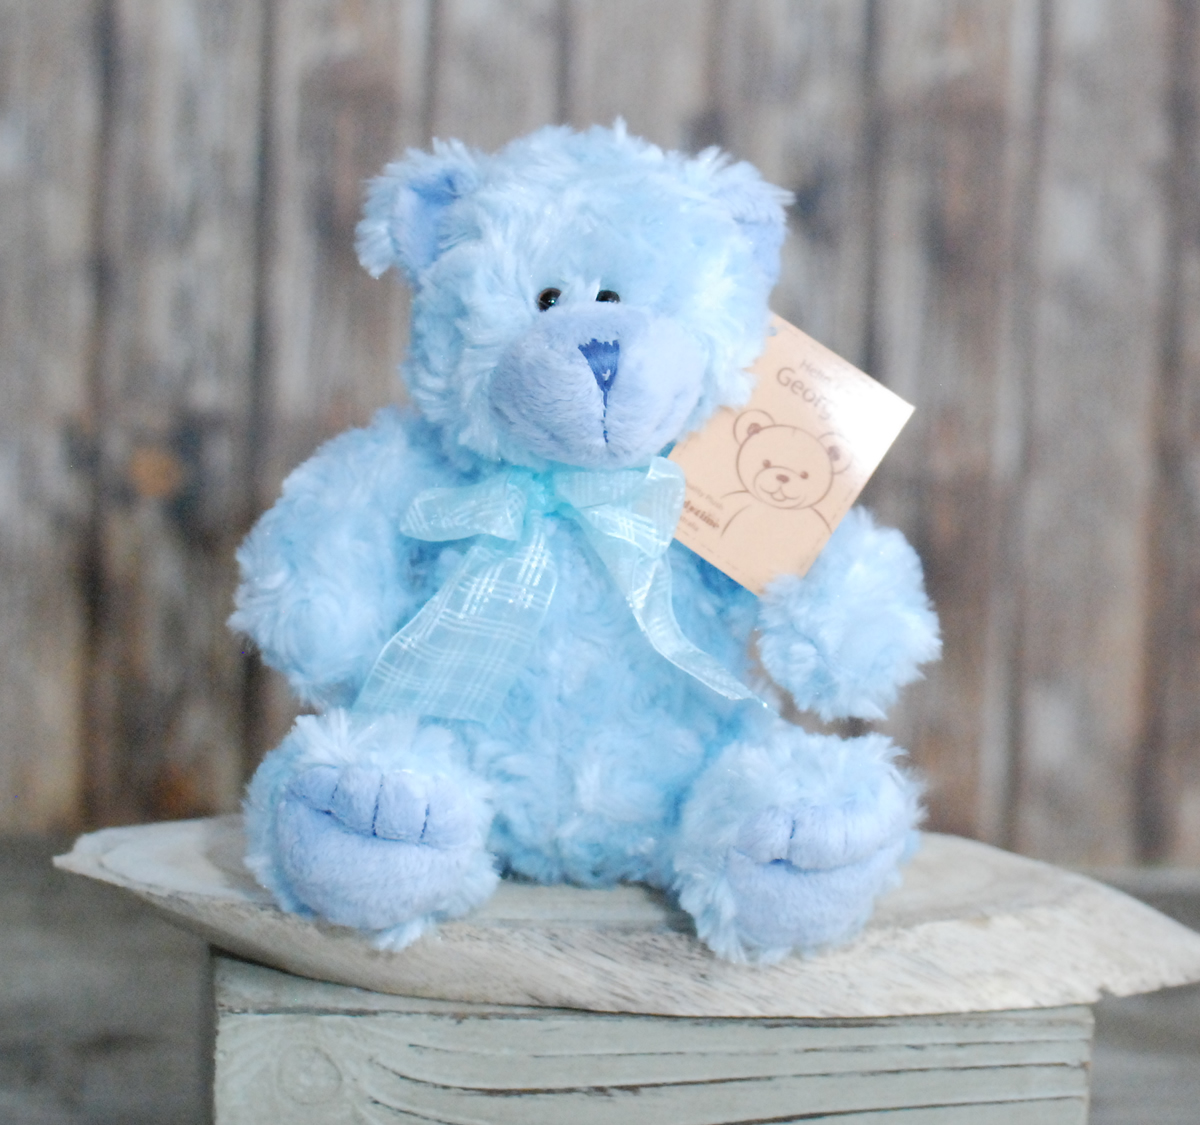 Blue teddy bear small – 20cm